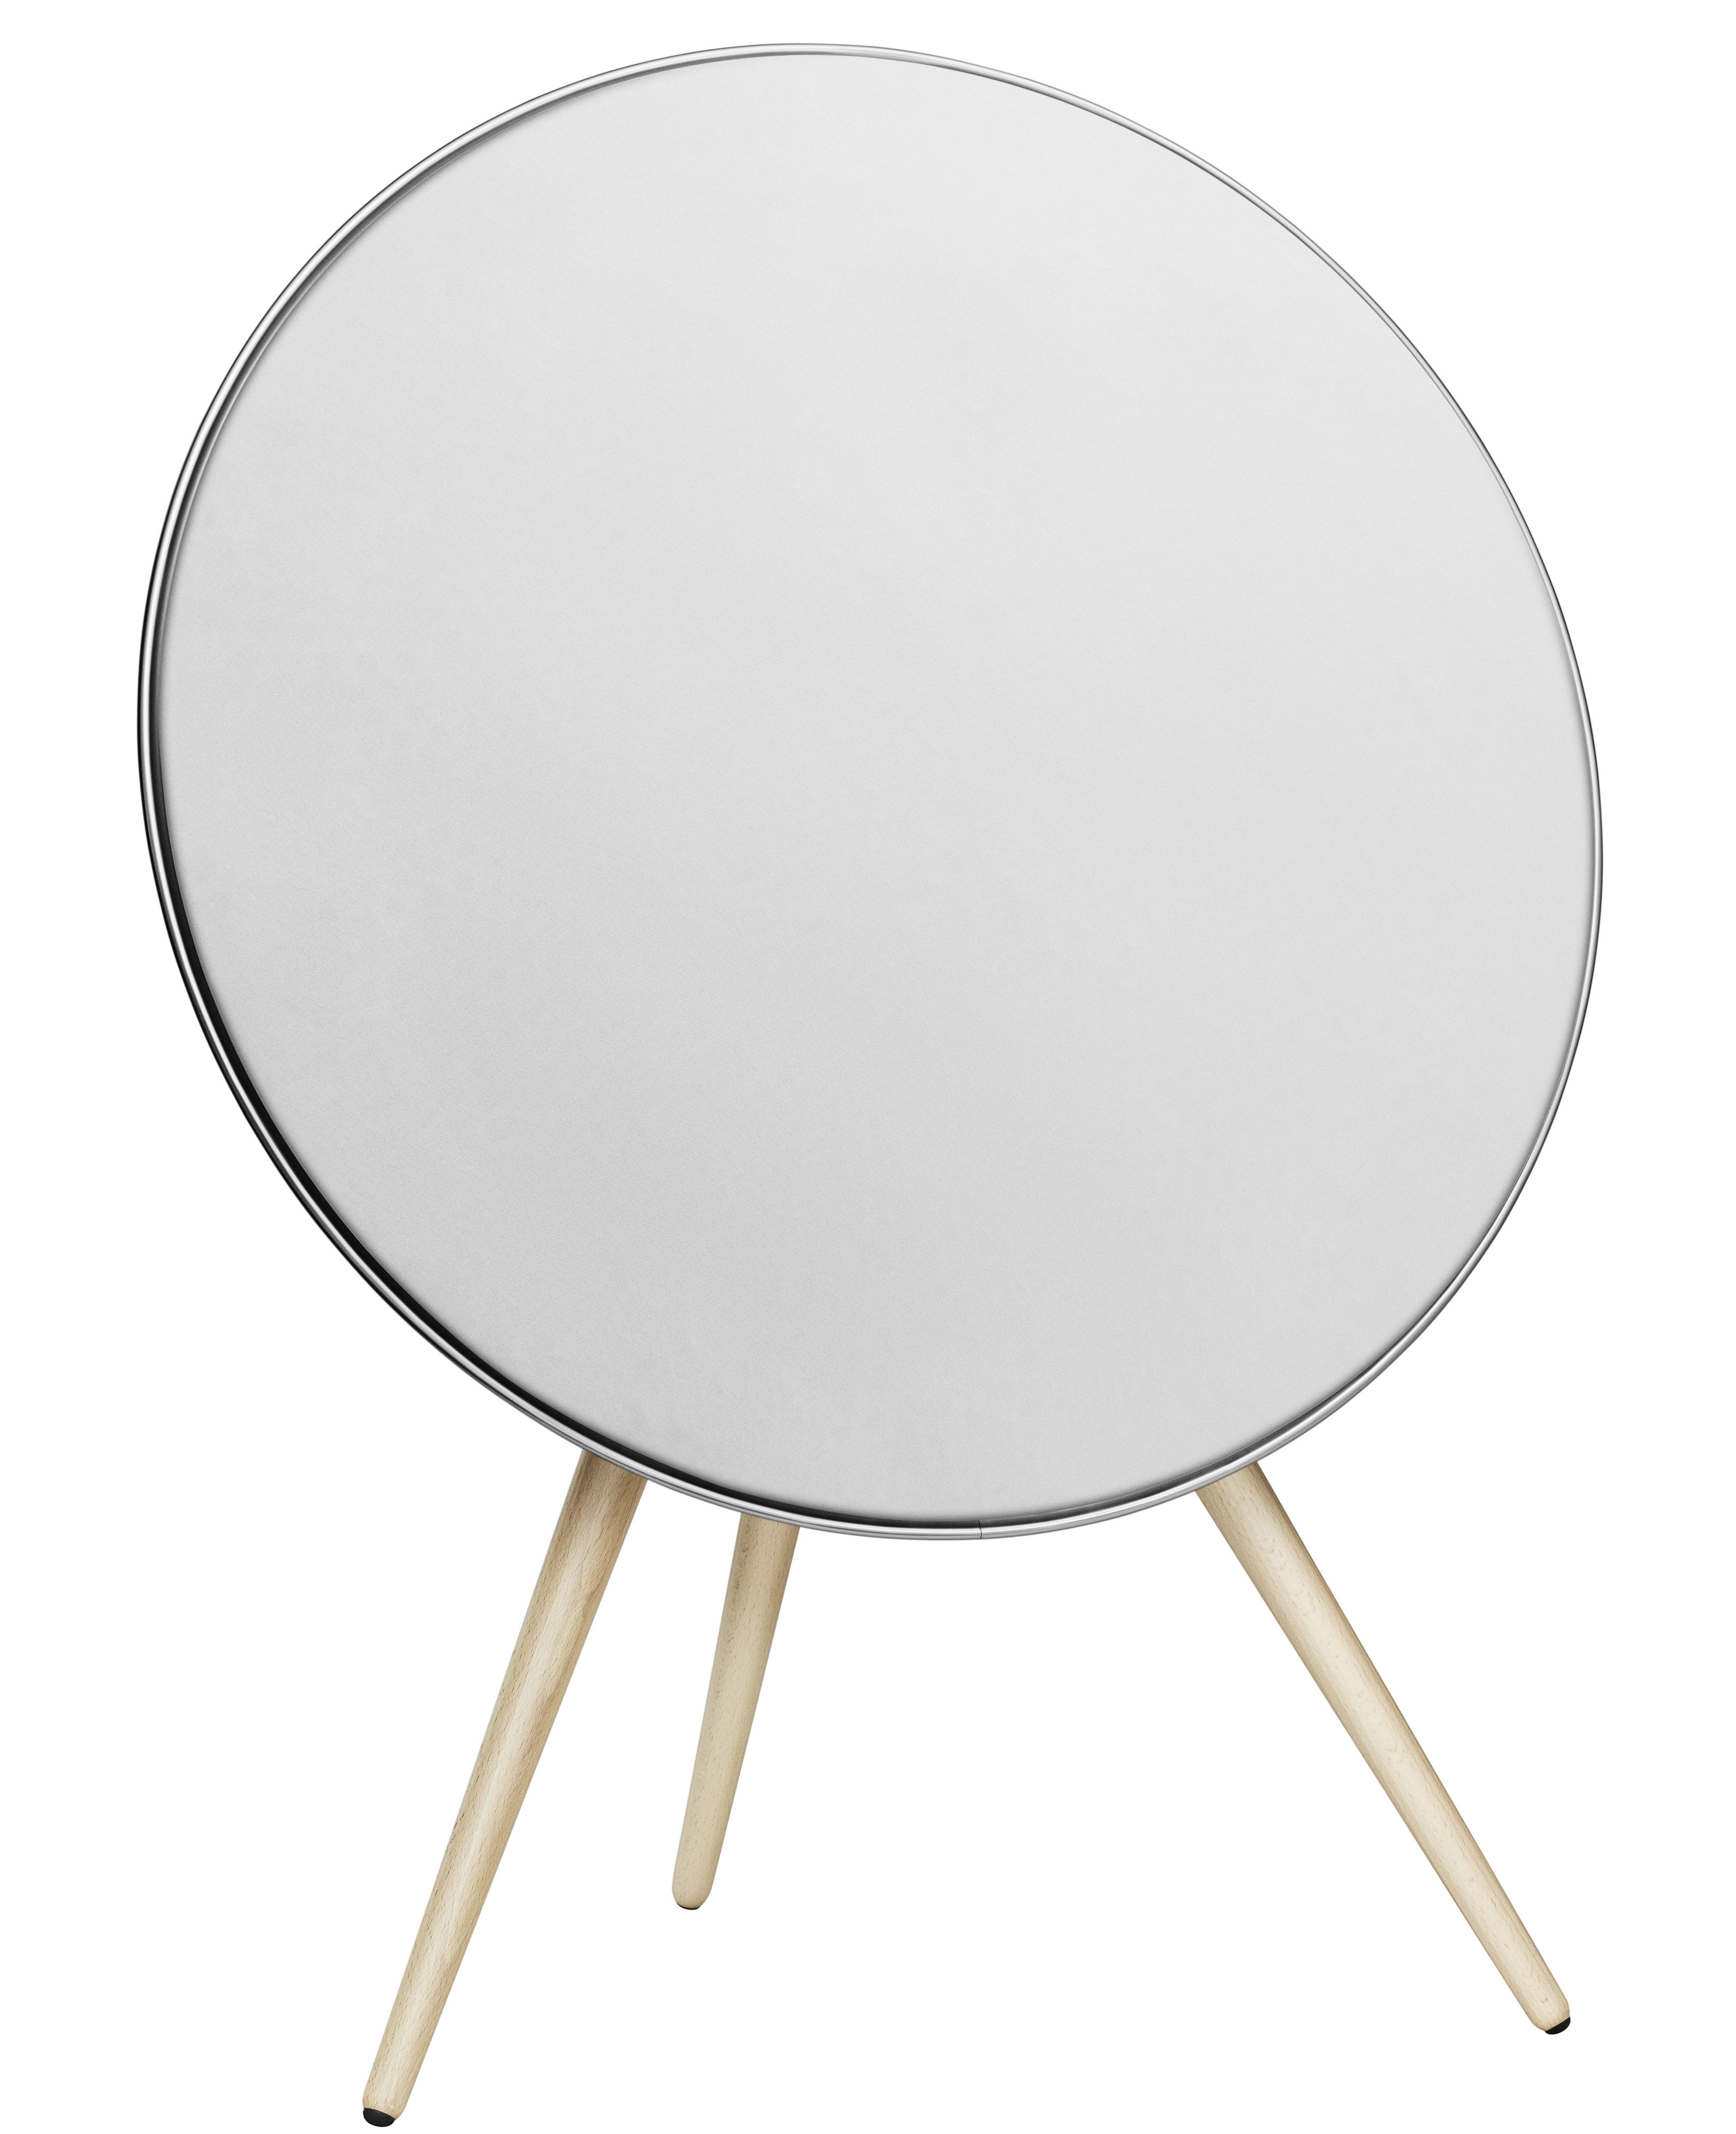 Father's day - Trendy high-tech accessories - BeoPlay A9 Speaker by B&O PLAY by Bang & Olufsen - White / Mapple leg - Maple, Plastic material